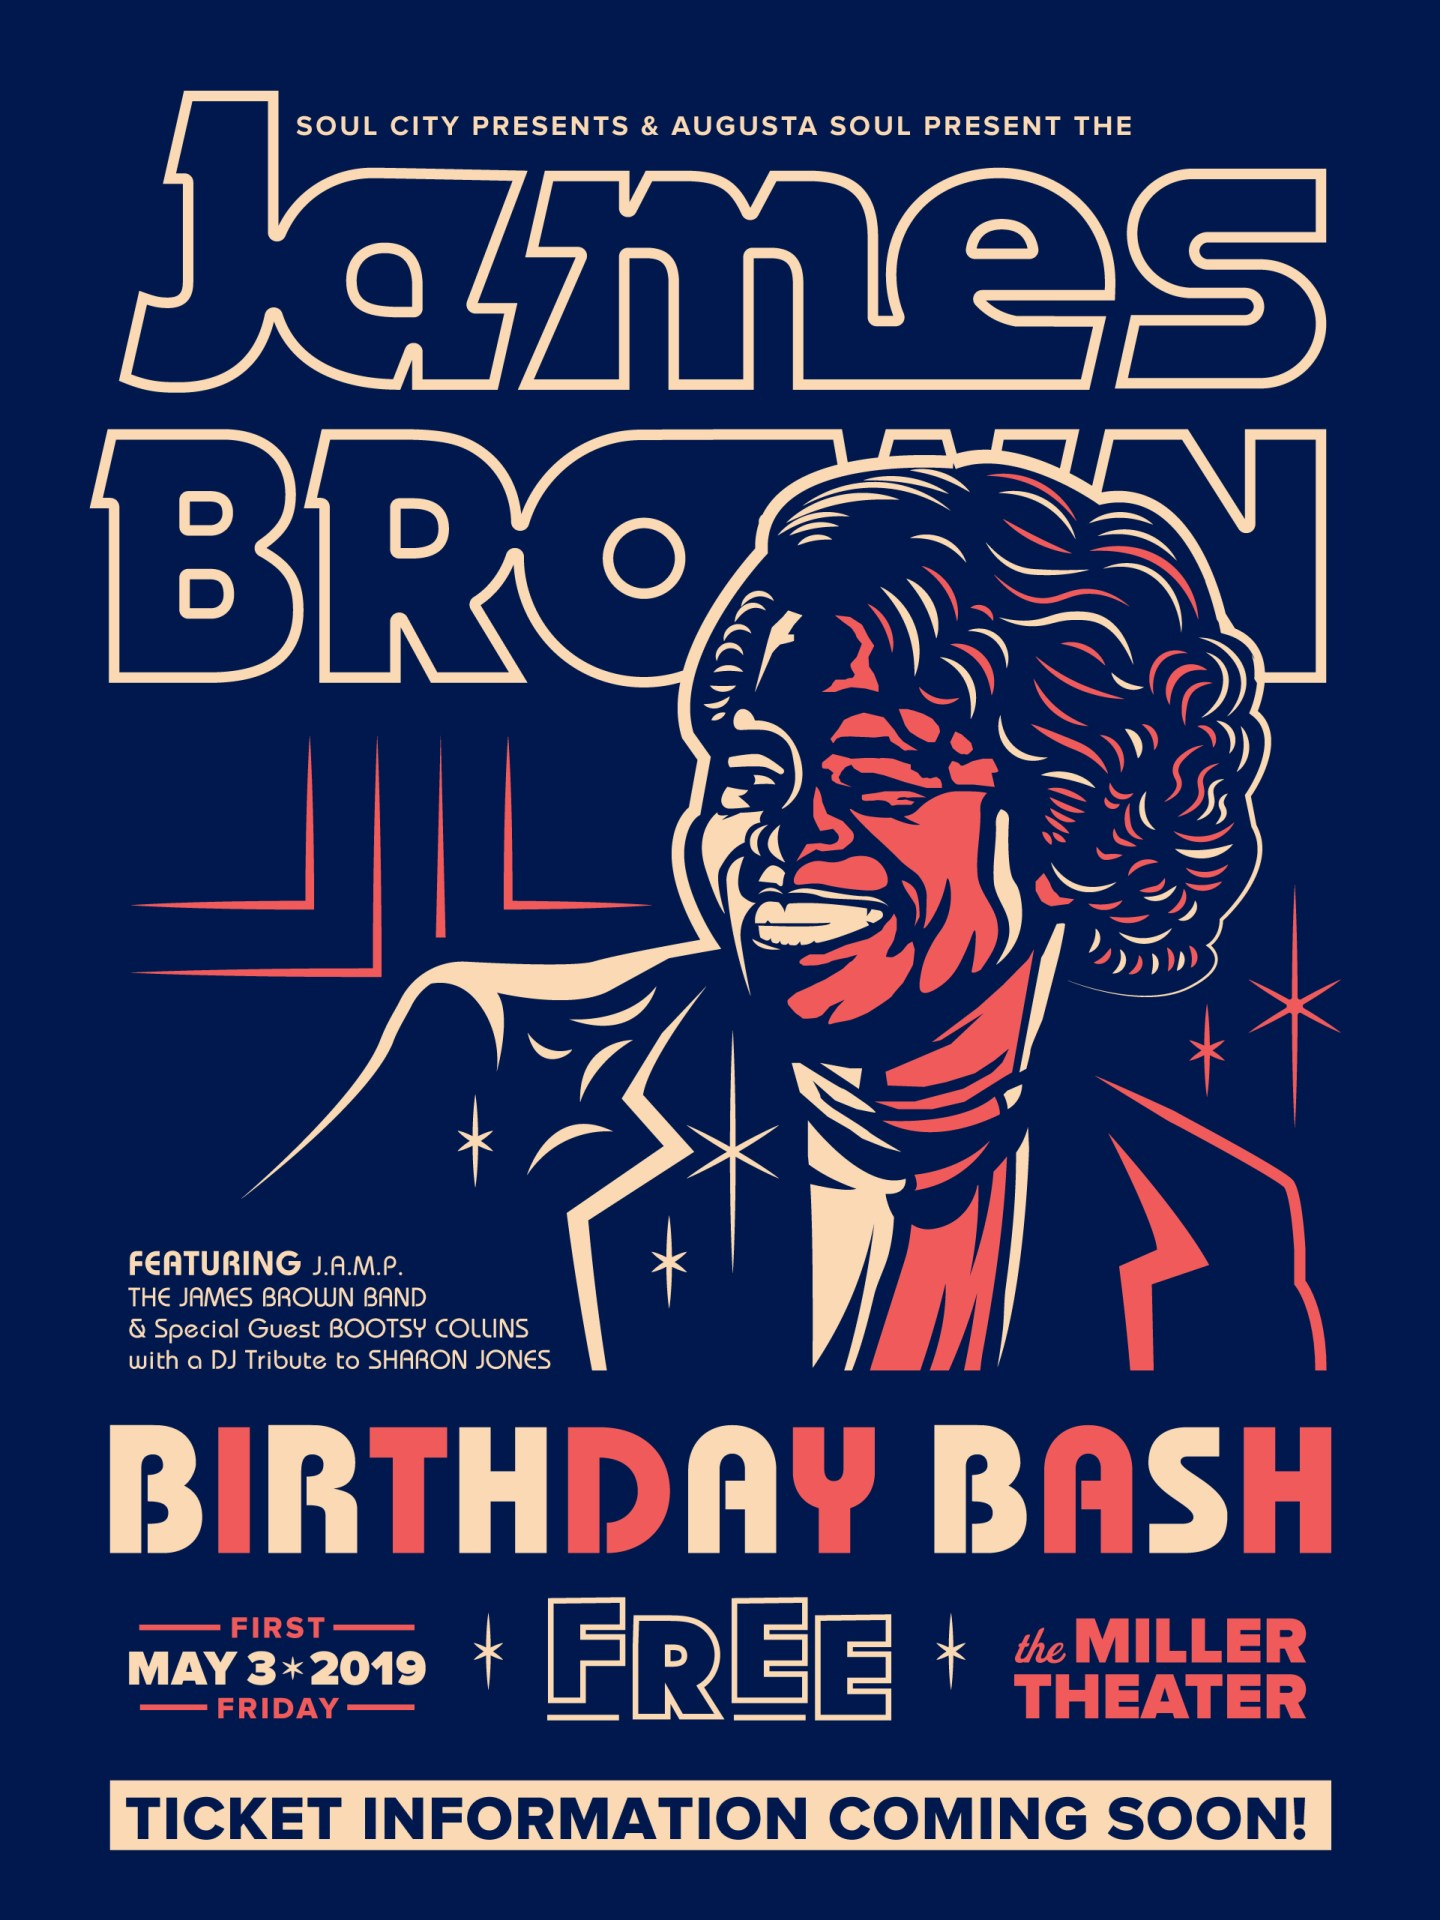 """James-Brown-Birthday-Bash-Flyer-2-Credit-Miller-Theater-1440x1920 """"Get on the Good Foot"""" in Augusta, GA. – Celebration of James Brown's Birthday (May 3rd)"""